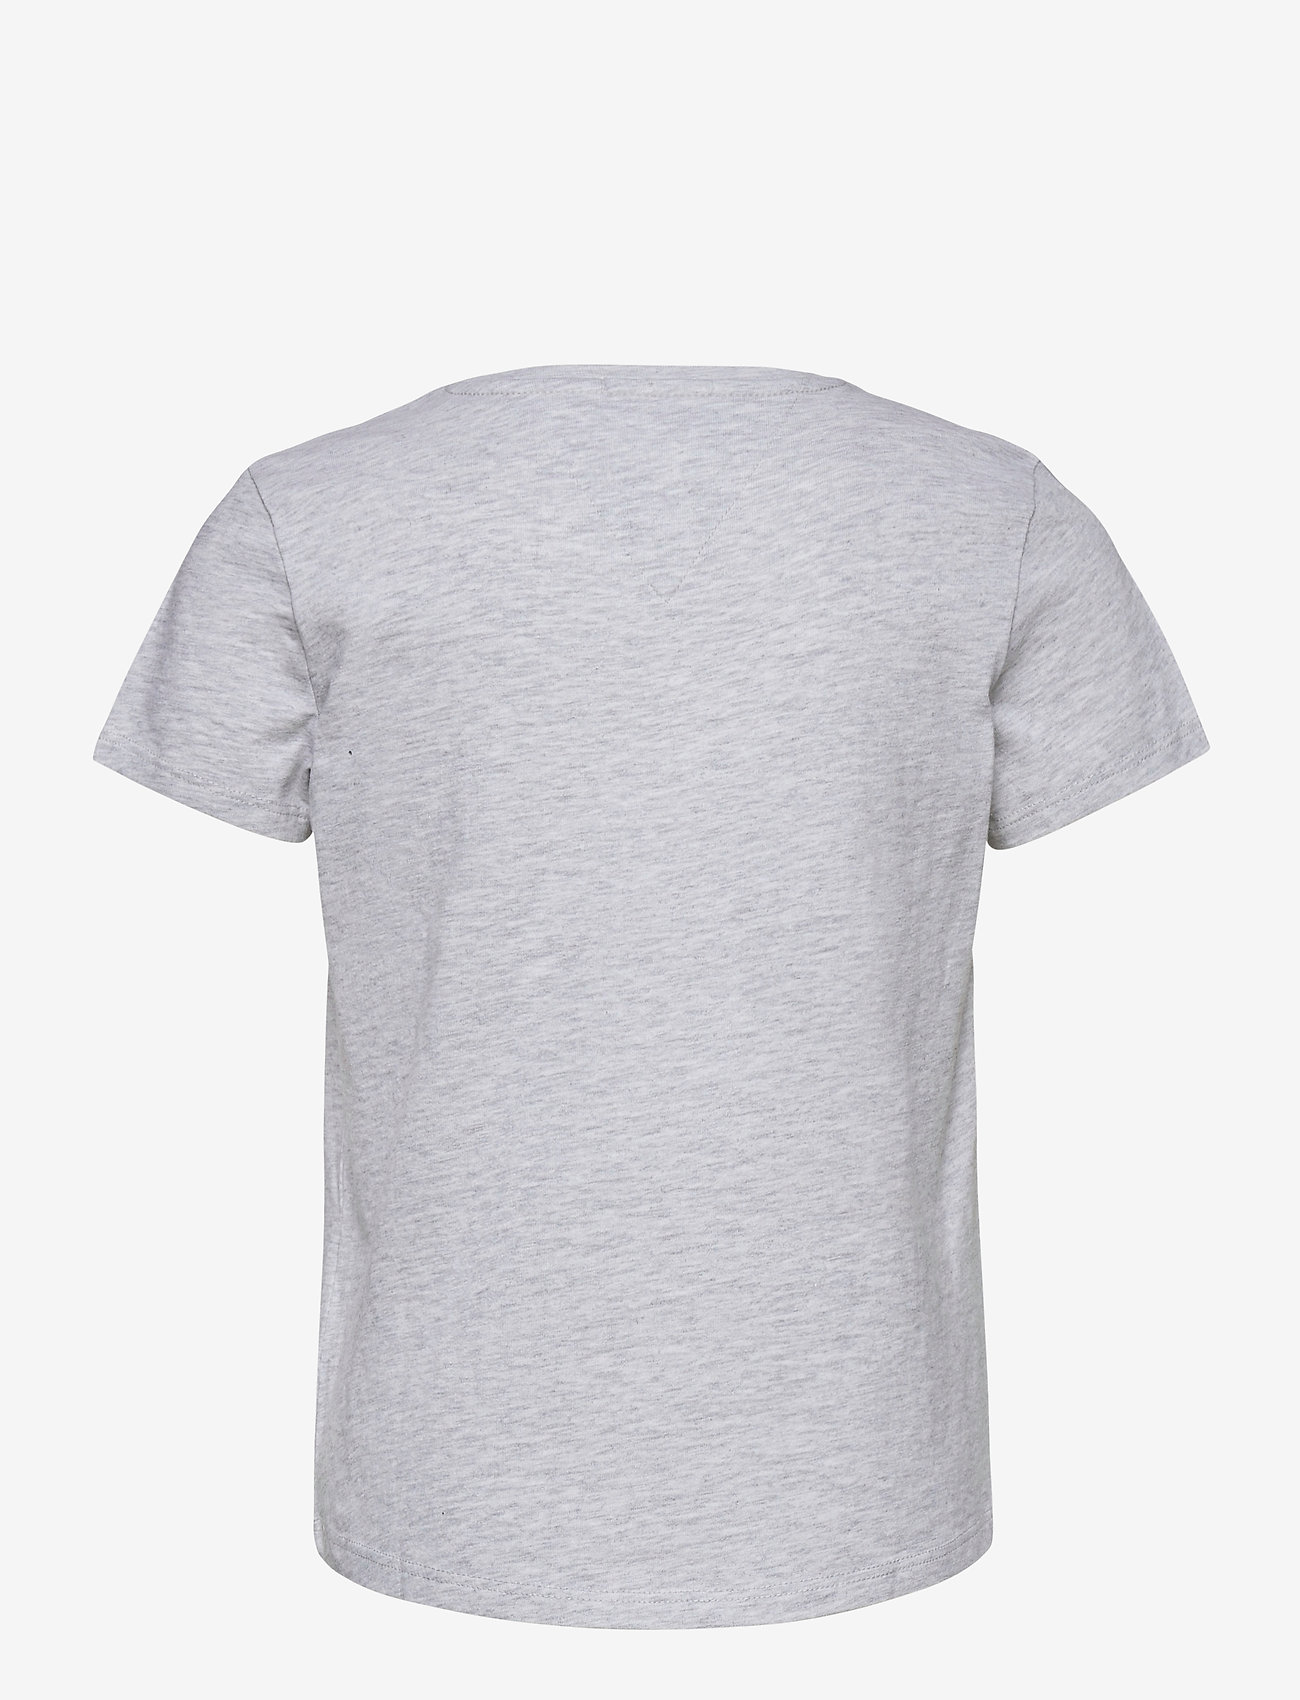 Tommy Hilfiger - LOGO TEE S/S 2 - short-sleeved - silver grey heather - 1